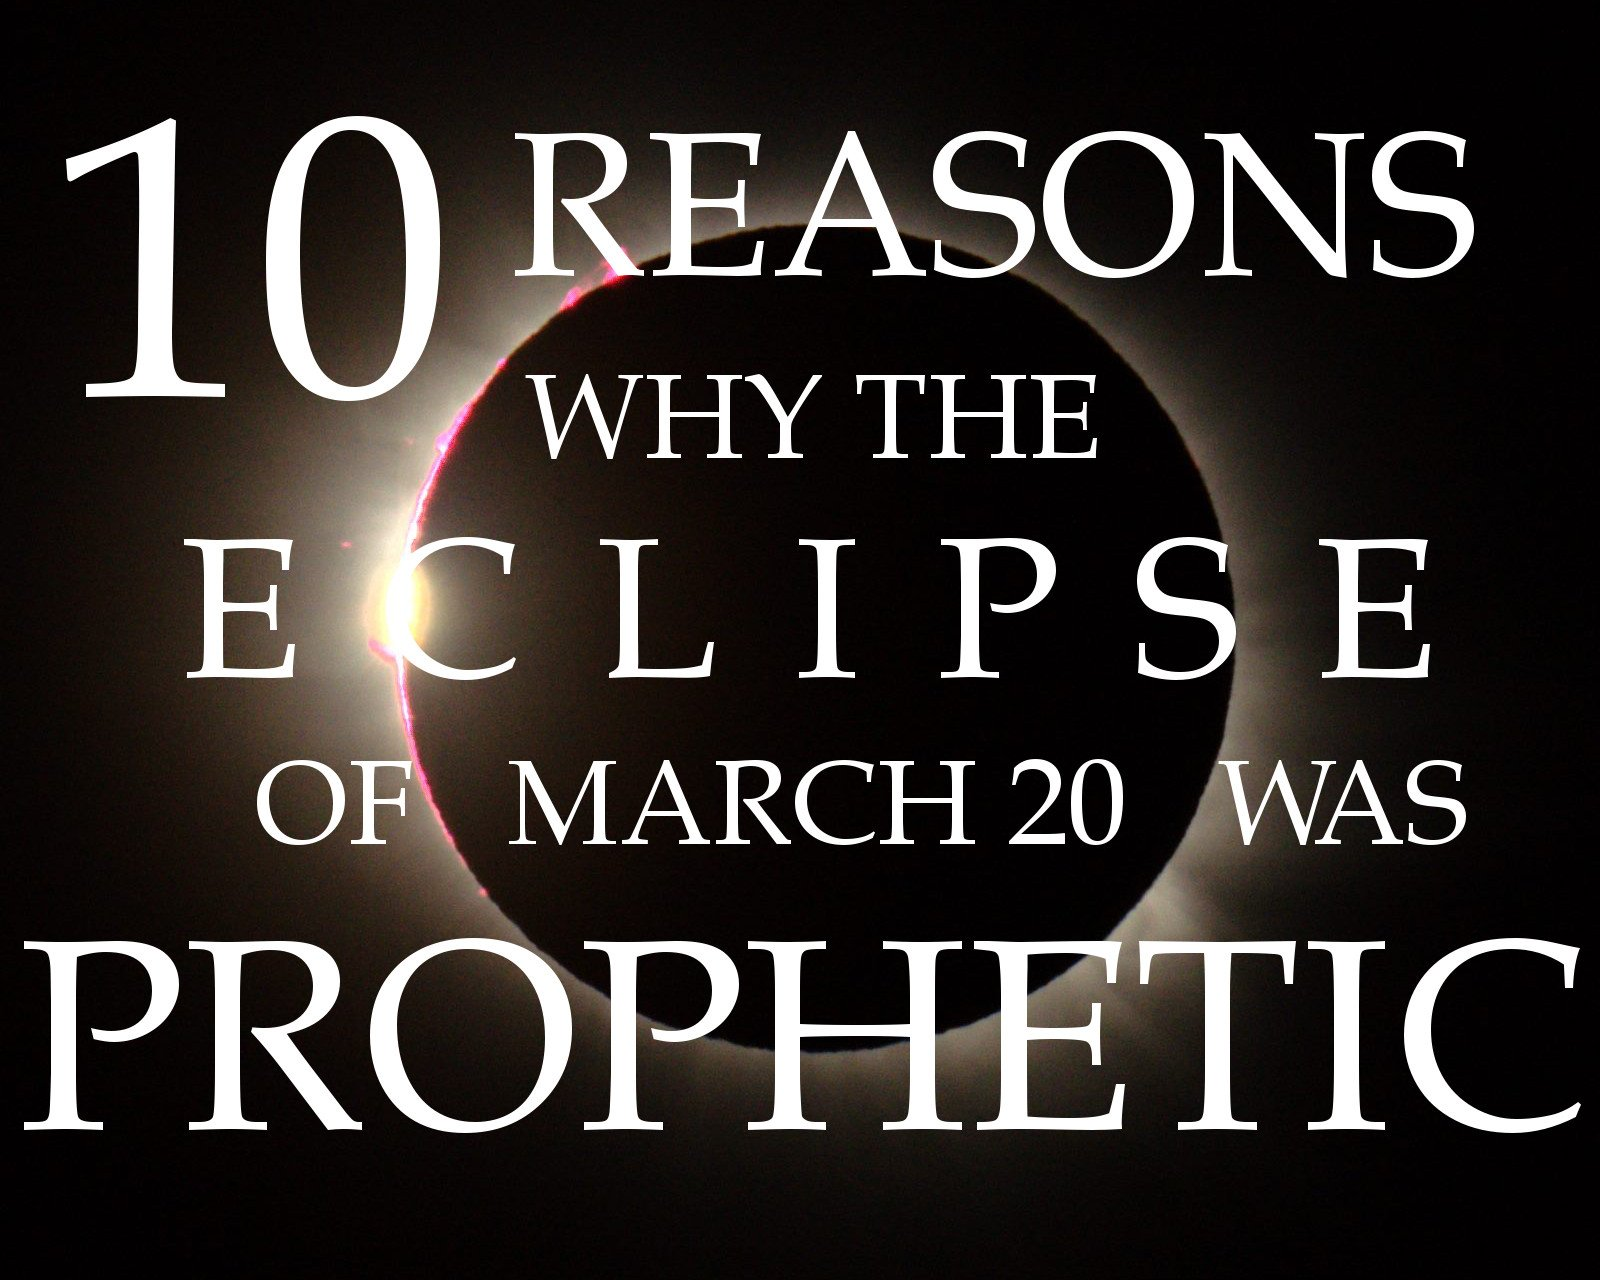 10 reasons why the eclipse of March 20 was prophetic